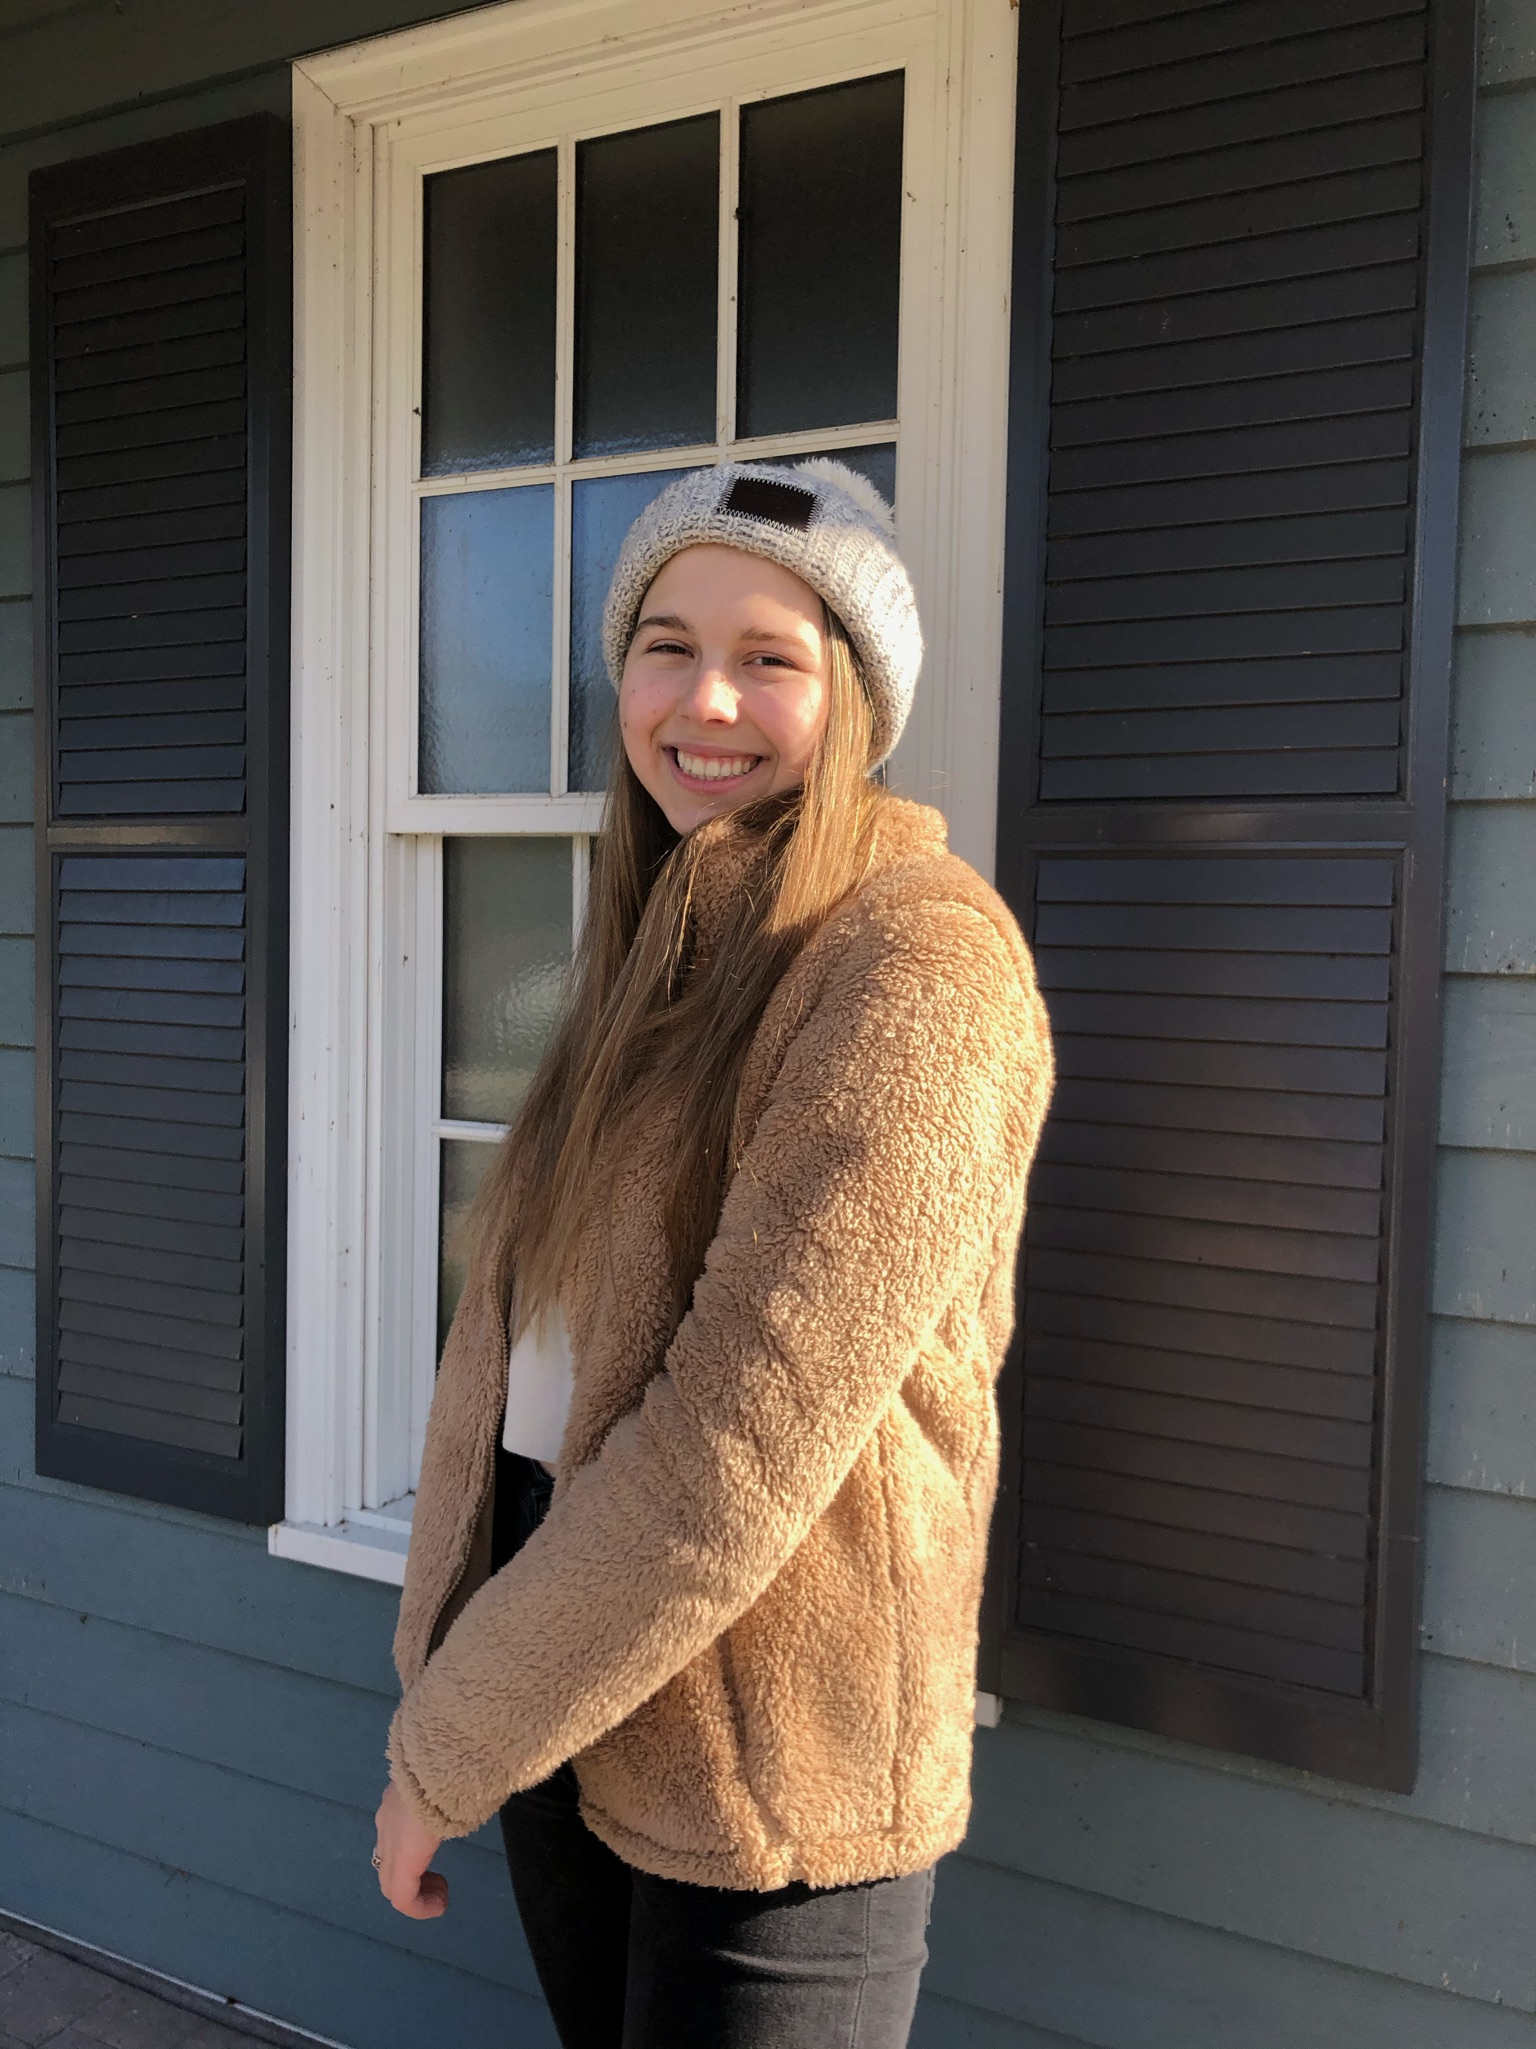 Natalia smiling infront of her house wearing a white hat and brown jacket